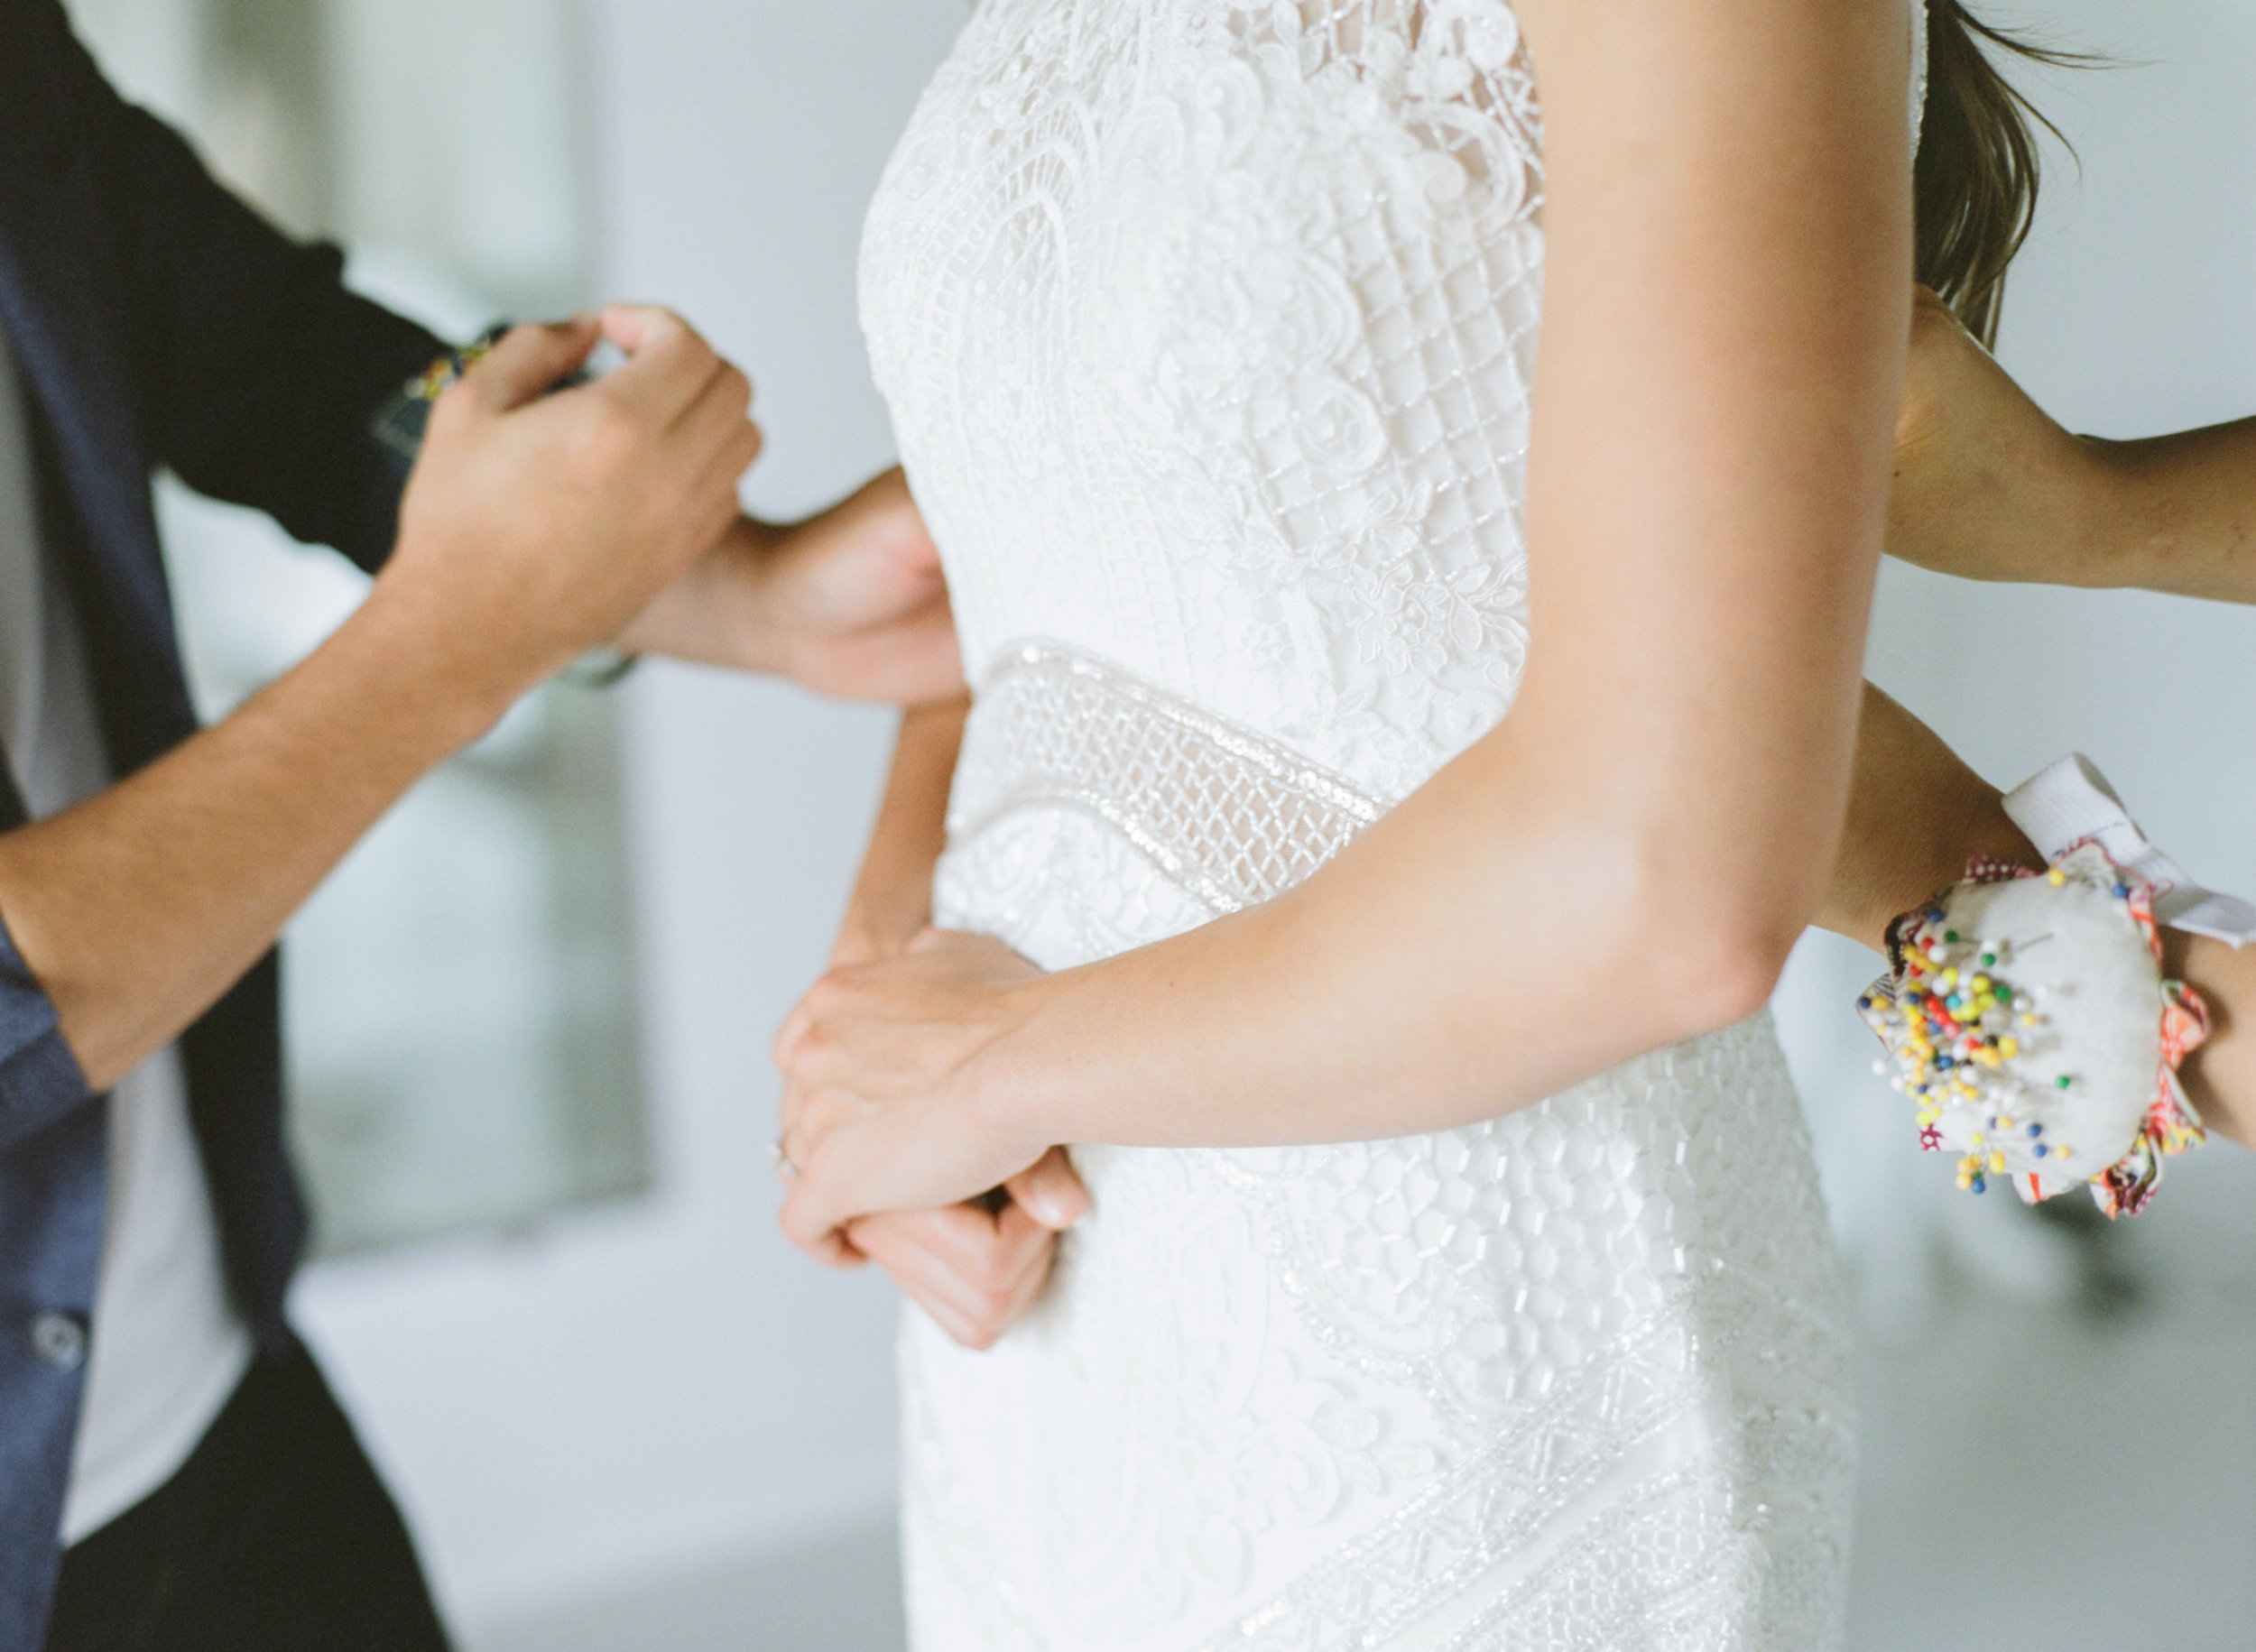 FAQ - When should I have my dress altered?The short answer is, when your size and weight are stable. If you are undertaking a diet or weight loss program, we'd advise you to set a goal date for stopping and stabilizing your size and weight, then book your appointment for that time. We require the first appointment to be at least three weeks before the wedding. If your size is very consistent, it would be fine to have your dress altered 3-4 months before the wedding.How long does it take to get my dress back?Our turn-around time is 5 days for most typical dress alterations. Careful scheduling, allows us to work on your dress right after your fitting, while all details are still fresh in our memory. To do this turnaround so quickly, we have to be very organized with our appointments. Please make sure you arrive on time and if you need to reschedule, kindly do so as far in advance as possible.